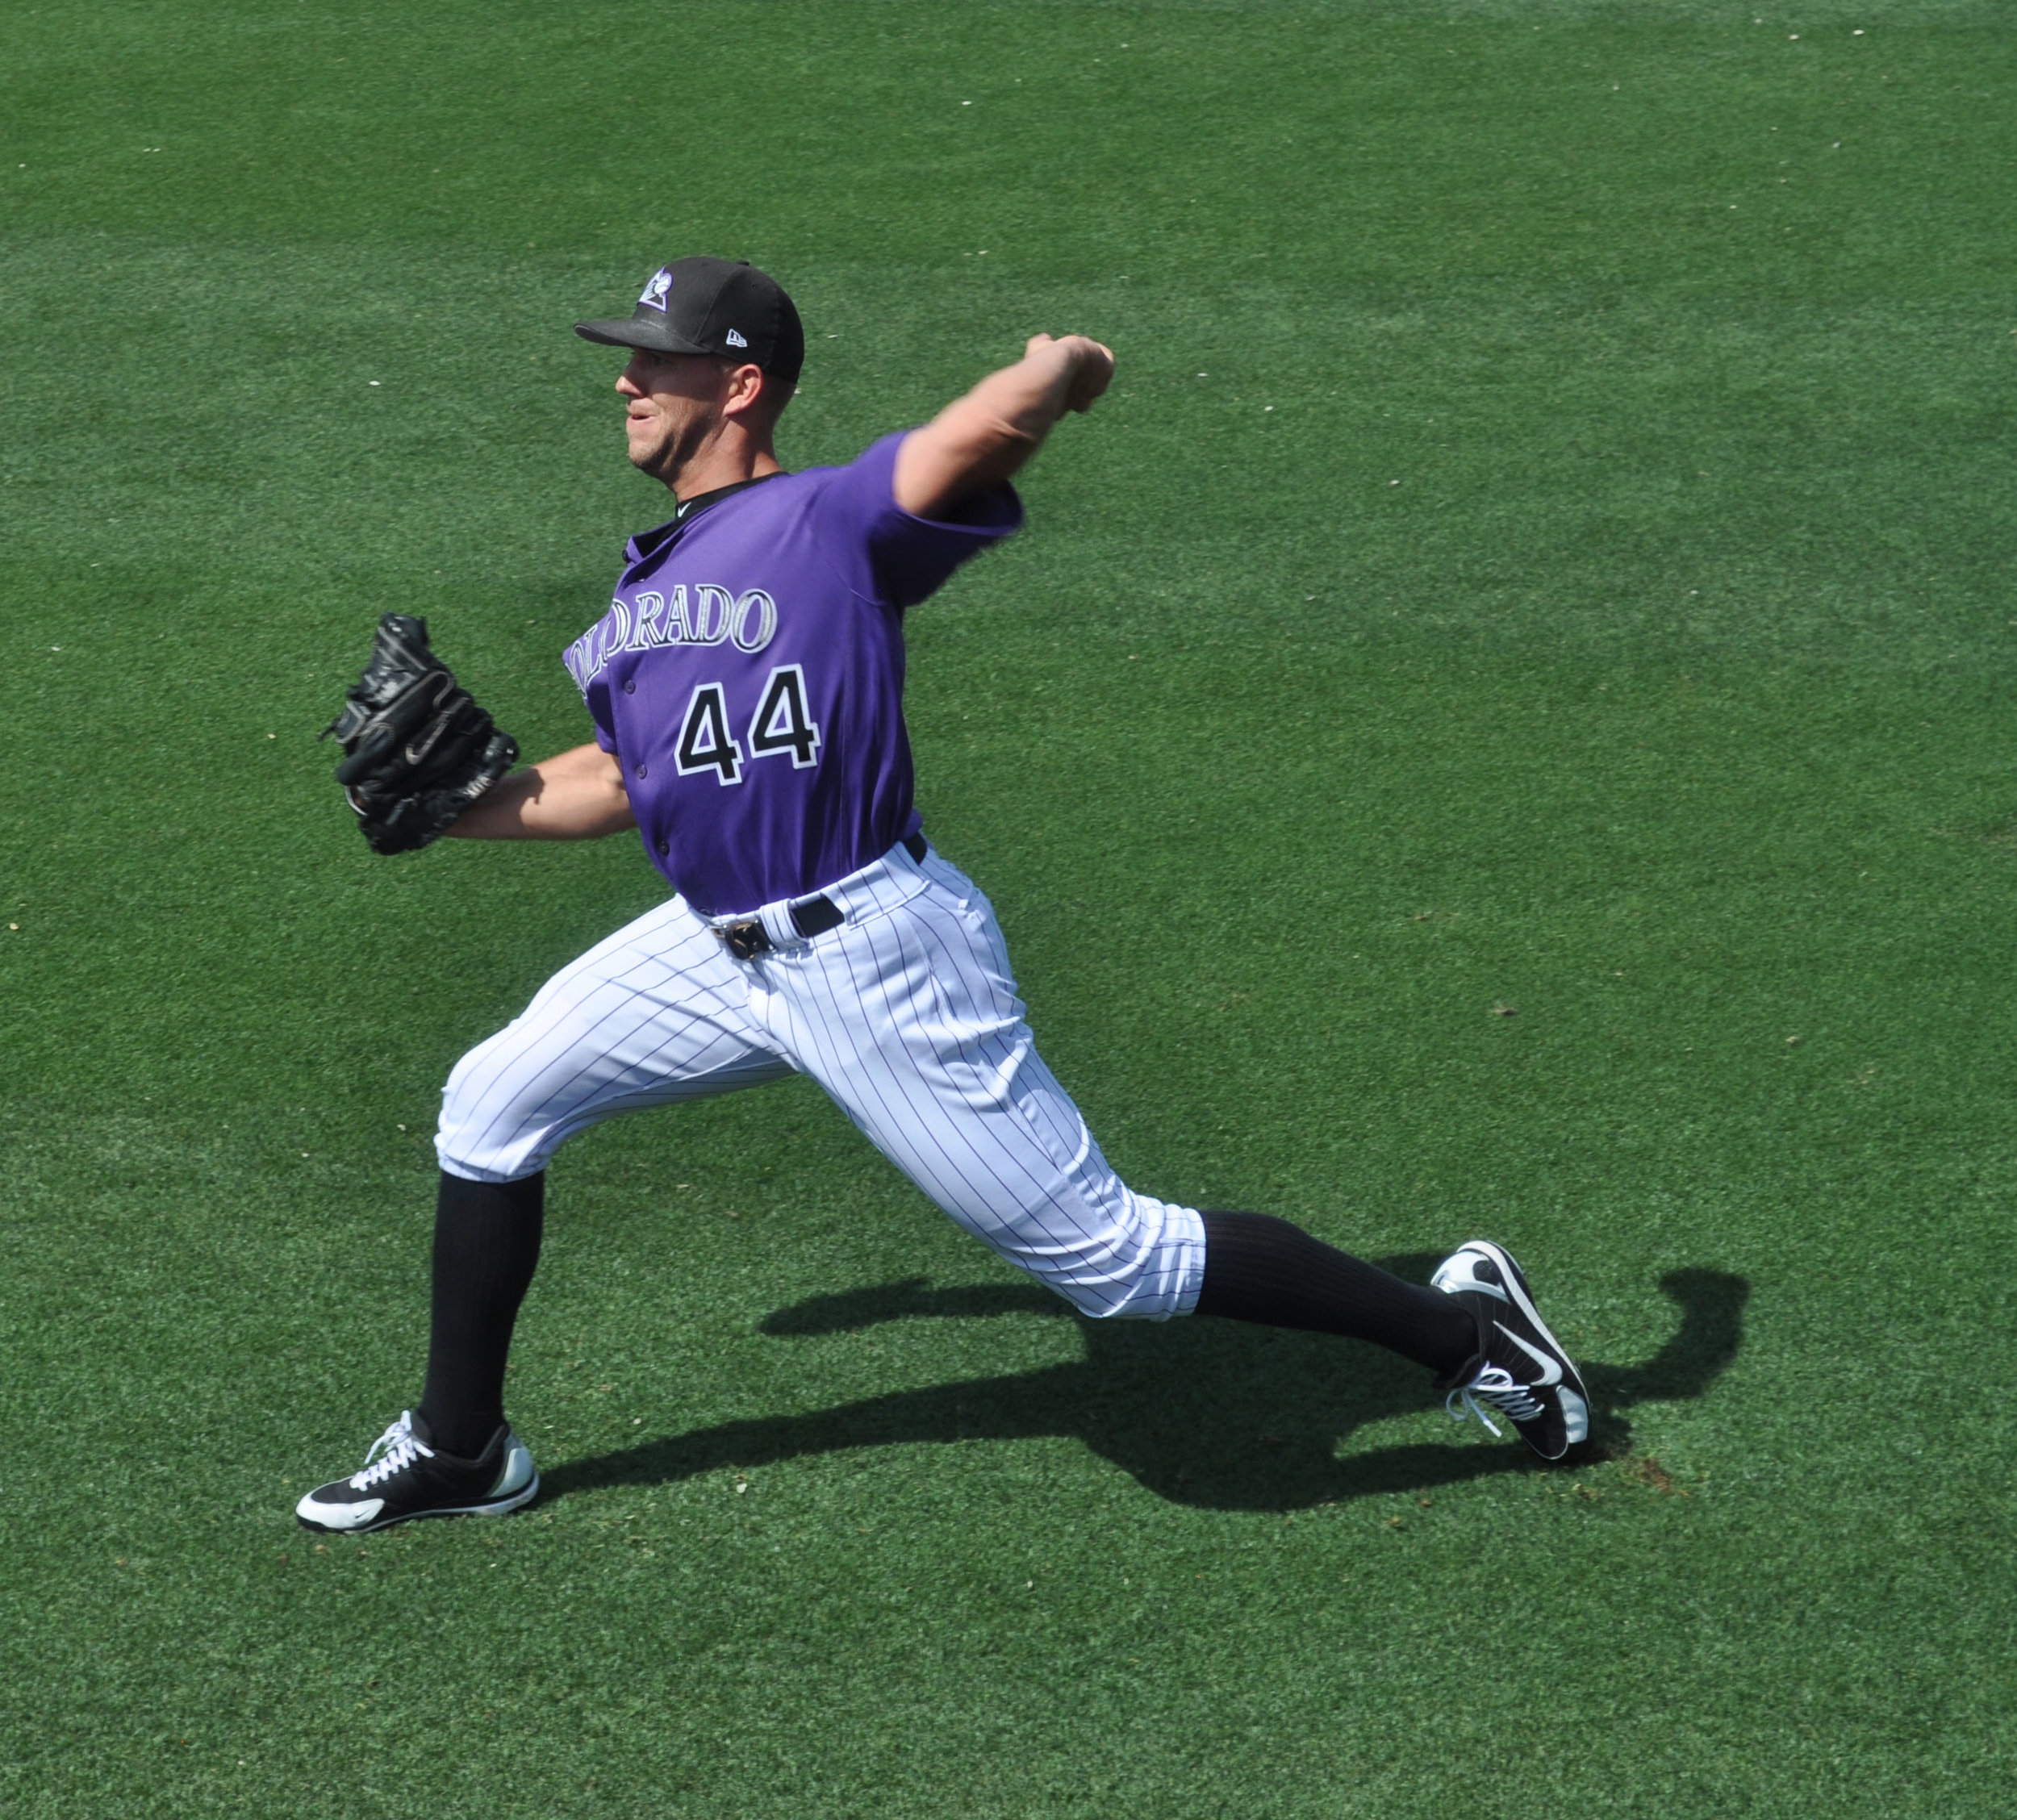 Colorado Rockies pitcher, Tyler Anderson, warms up before a preseason game against the Chicago Cubs.